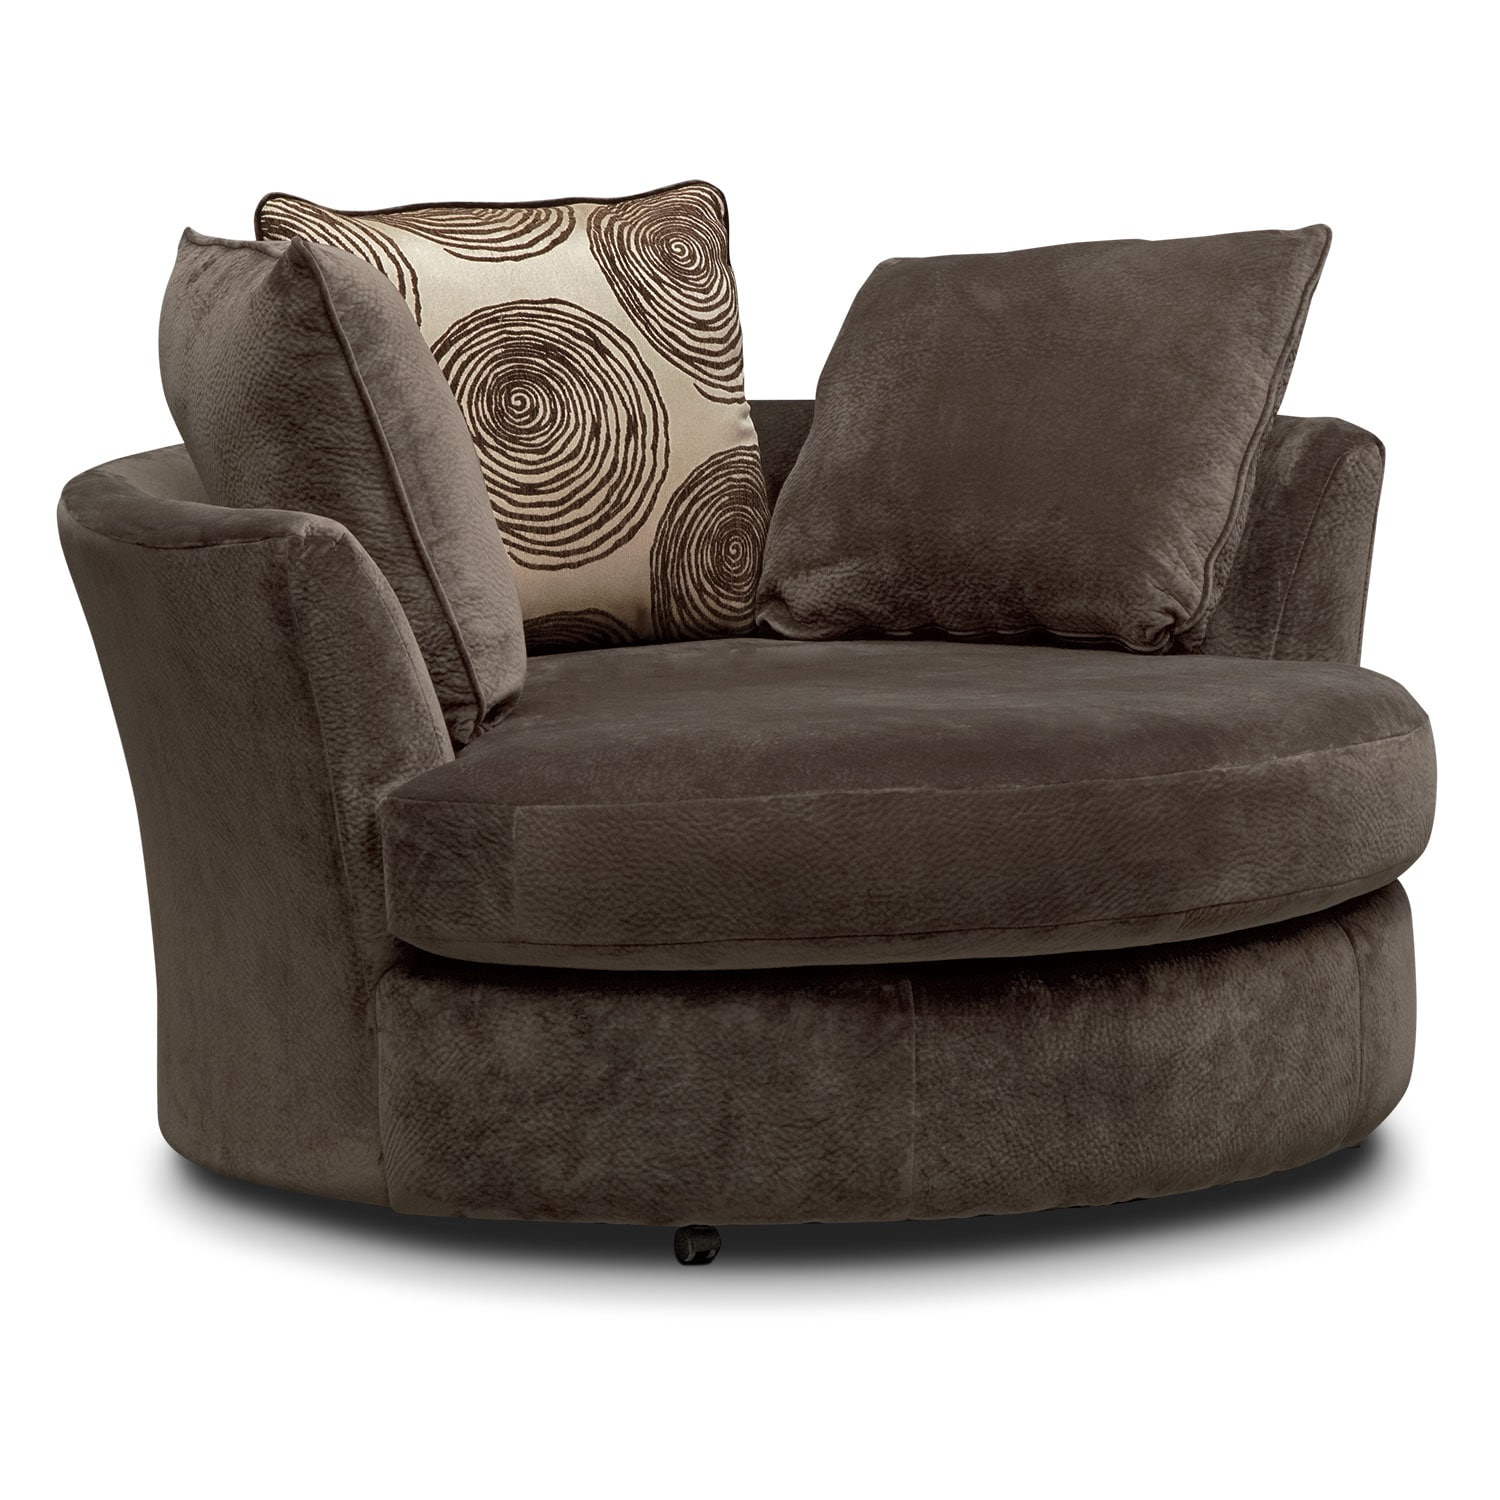 cordelle 2 piece right facing chaise sectional and swivel chair set chocolate by factory outlet. beautiful ideas. Home Design Ideas